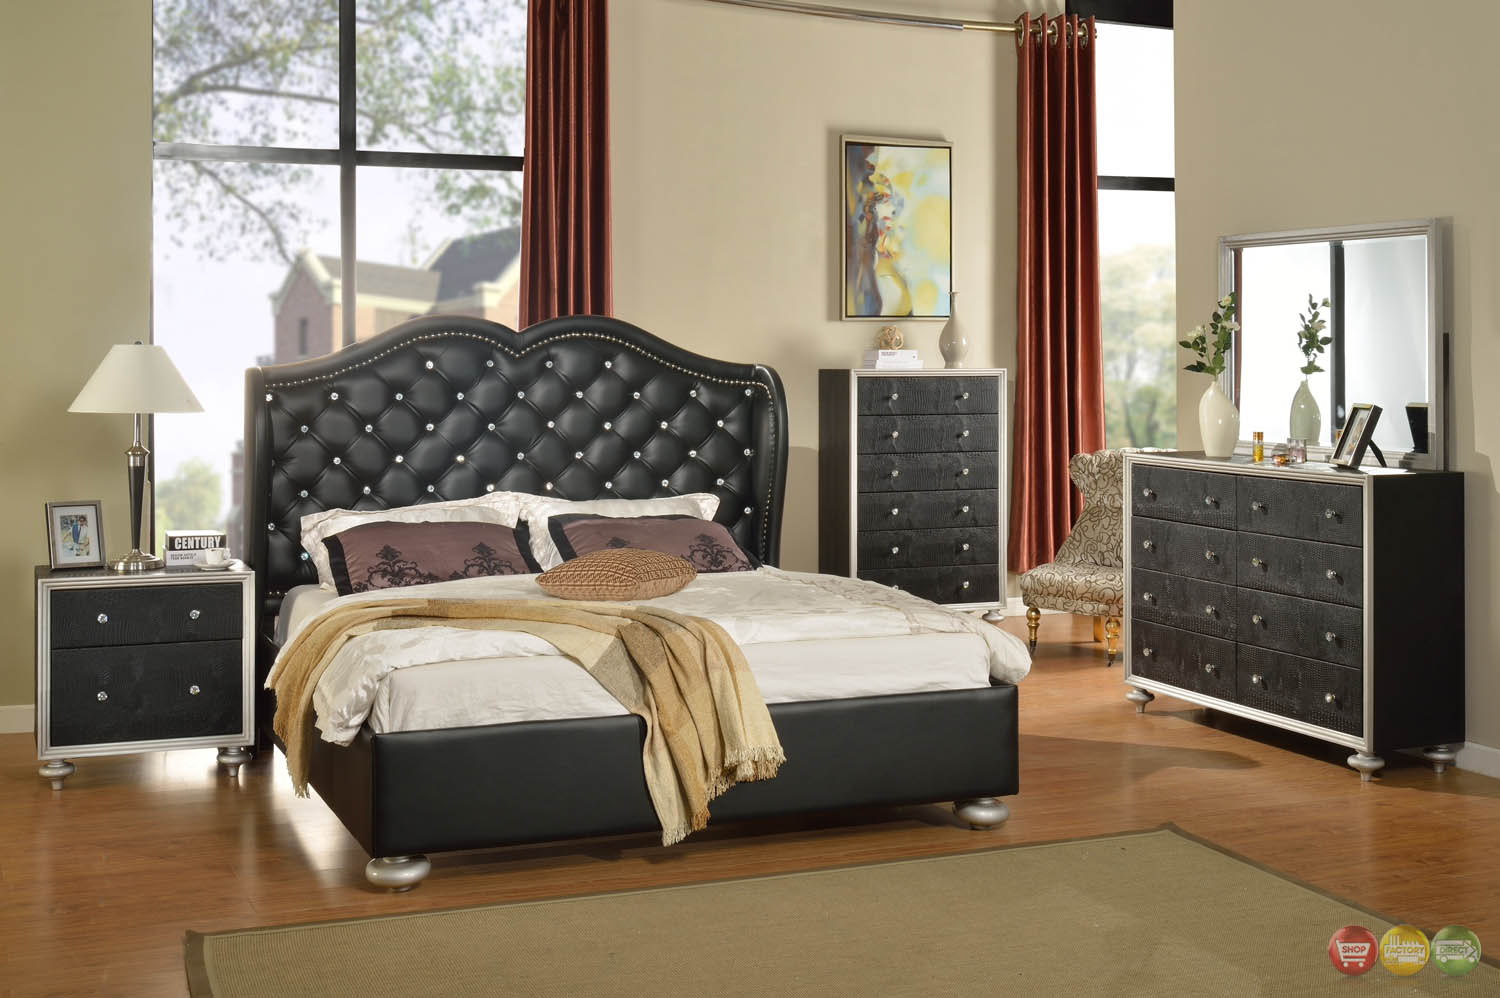 black button tufted wing back bed faux croc bedroom furniture set. Black Bedroom Furniture Sets. Home Design Ideas